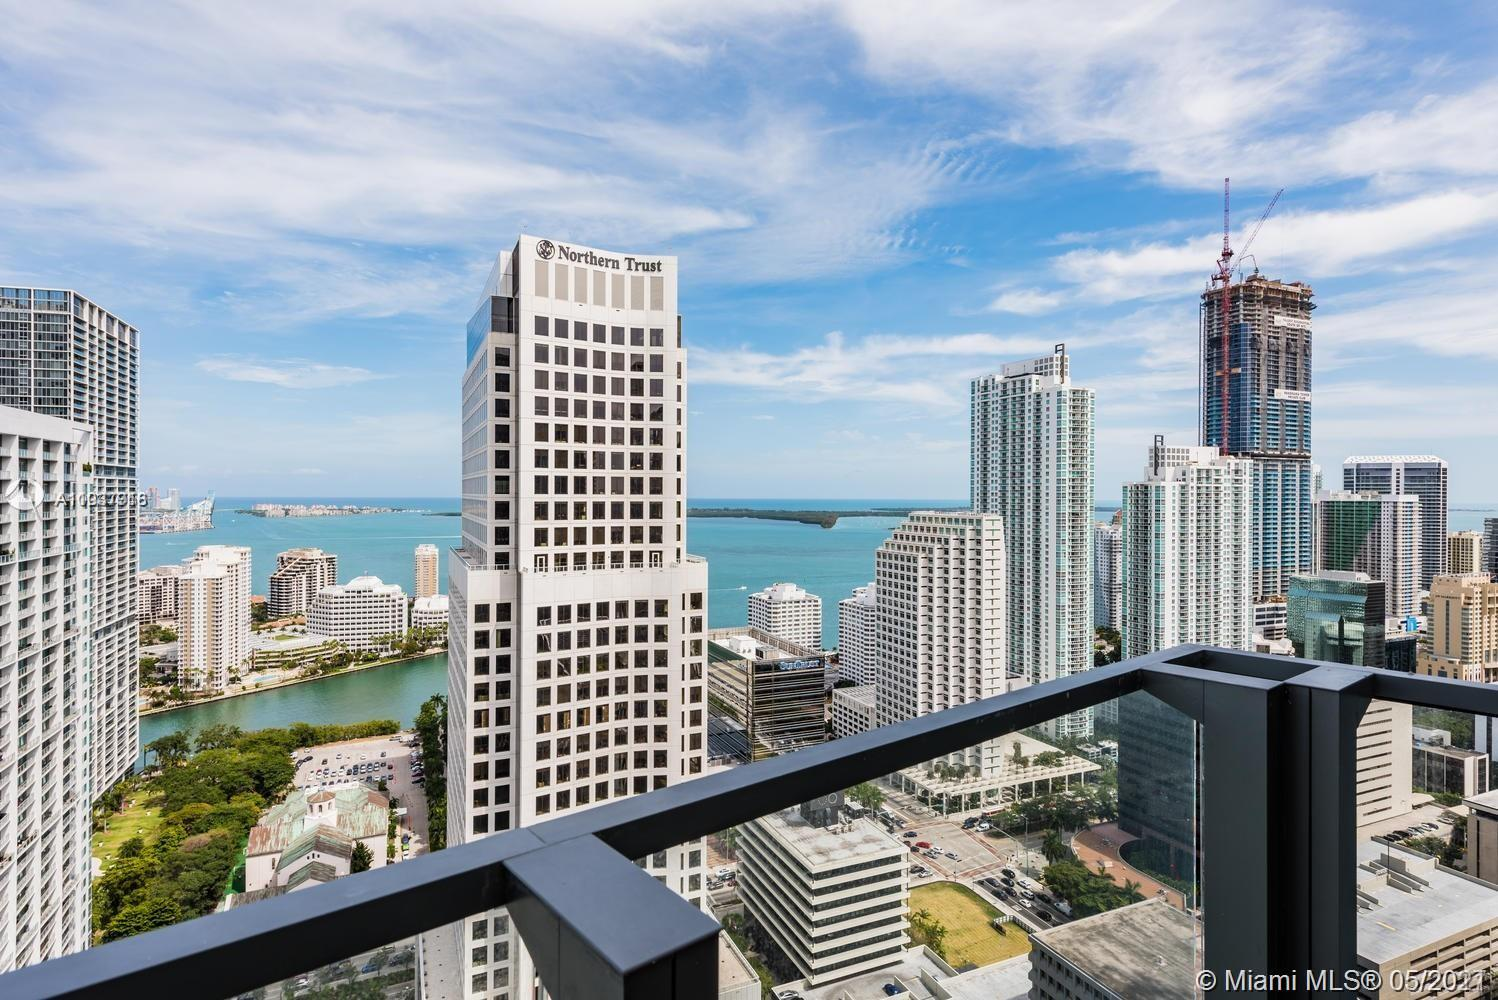 Reach Brickell City Centre #3409 - 68 SE 6 ST #3409, Miami, FL 33131